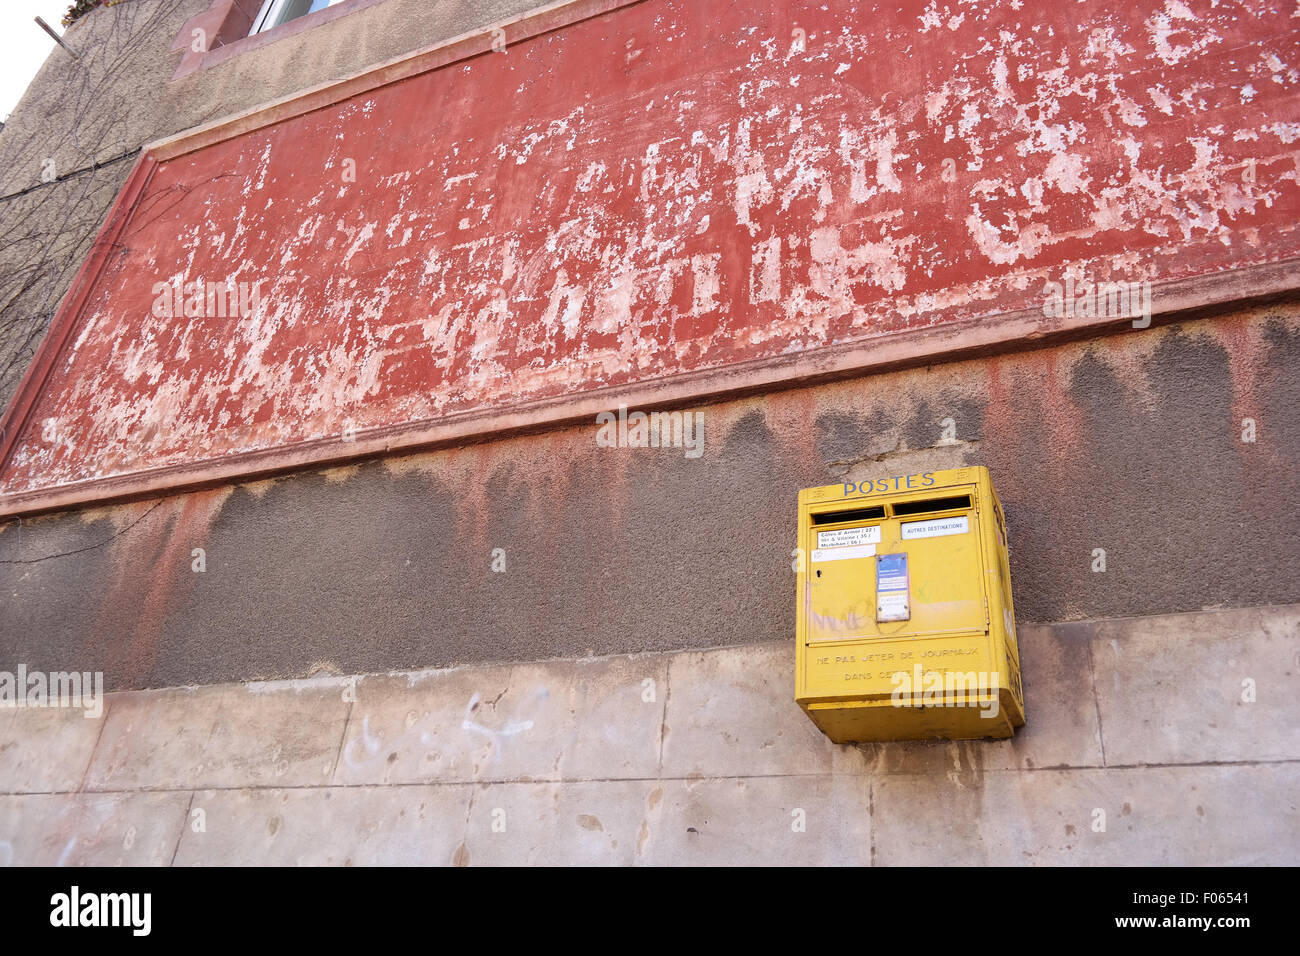 Old yellow French postbox hanging on a wall in Brittany, France. - Stock Image